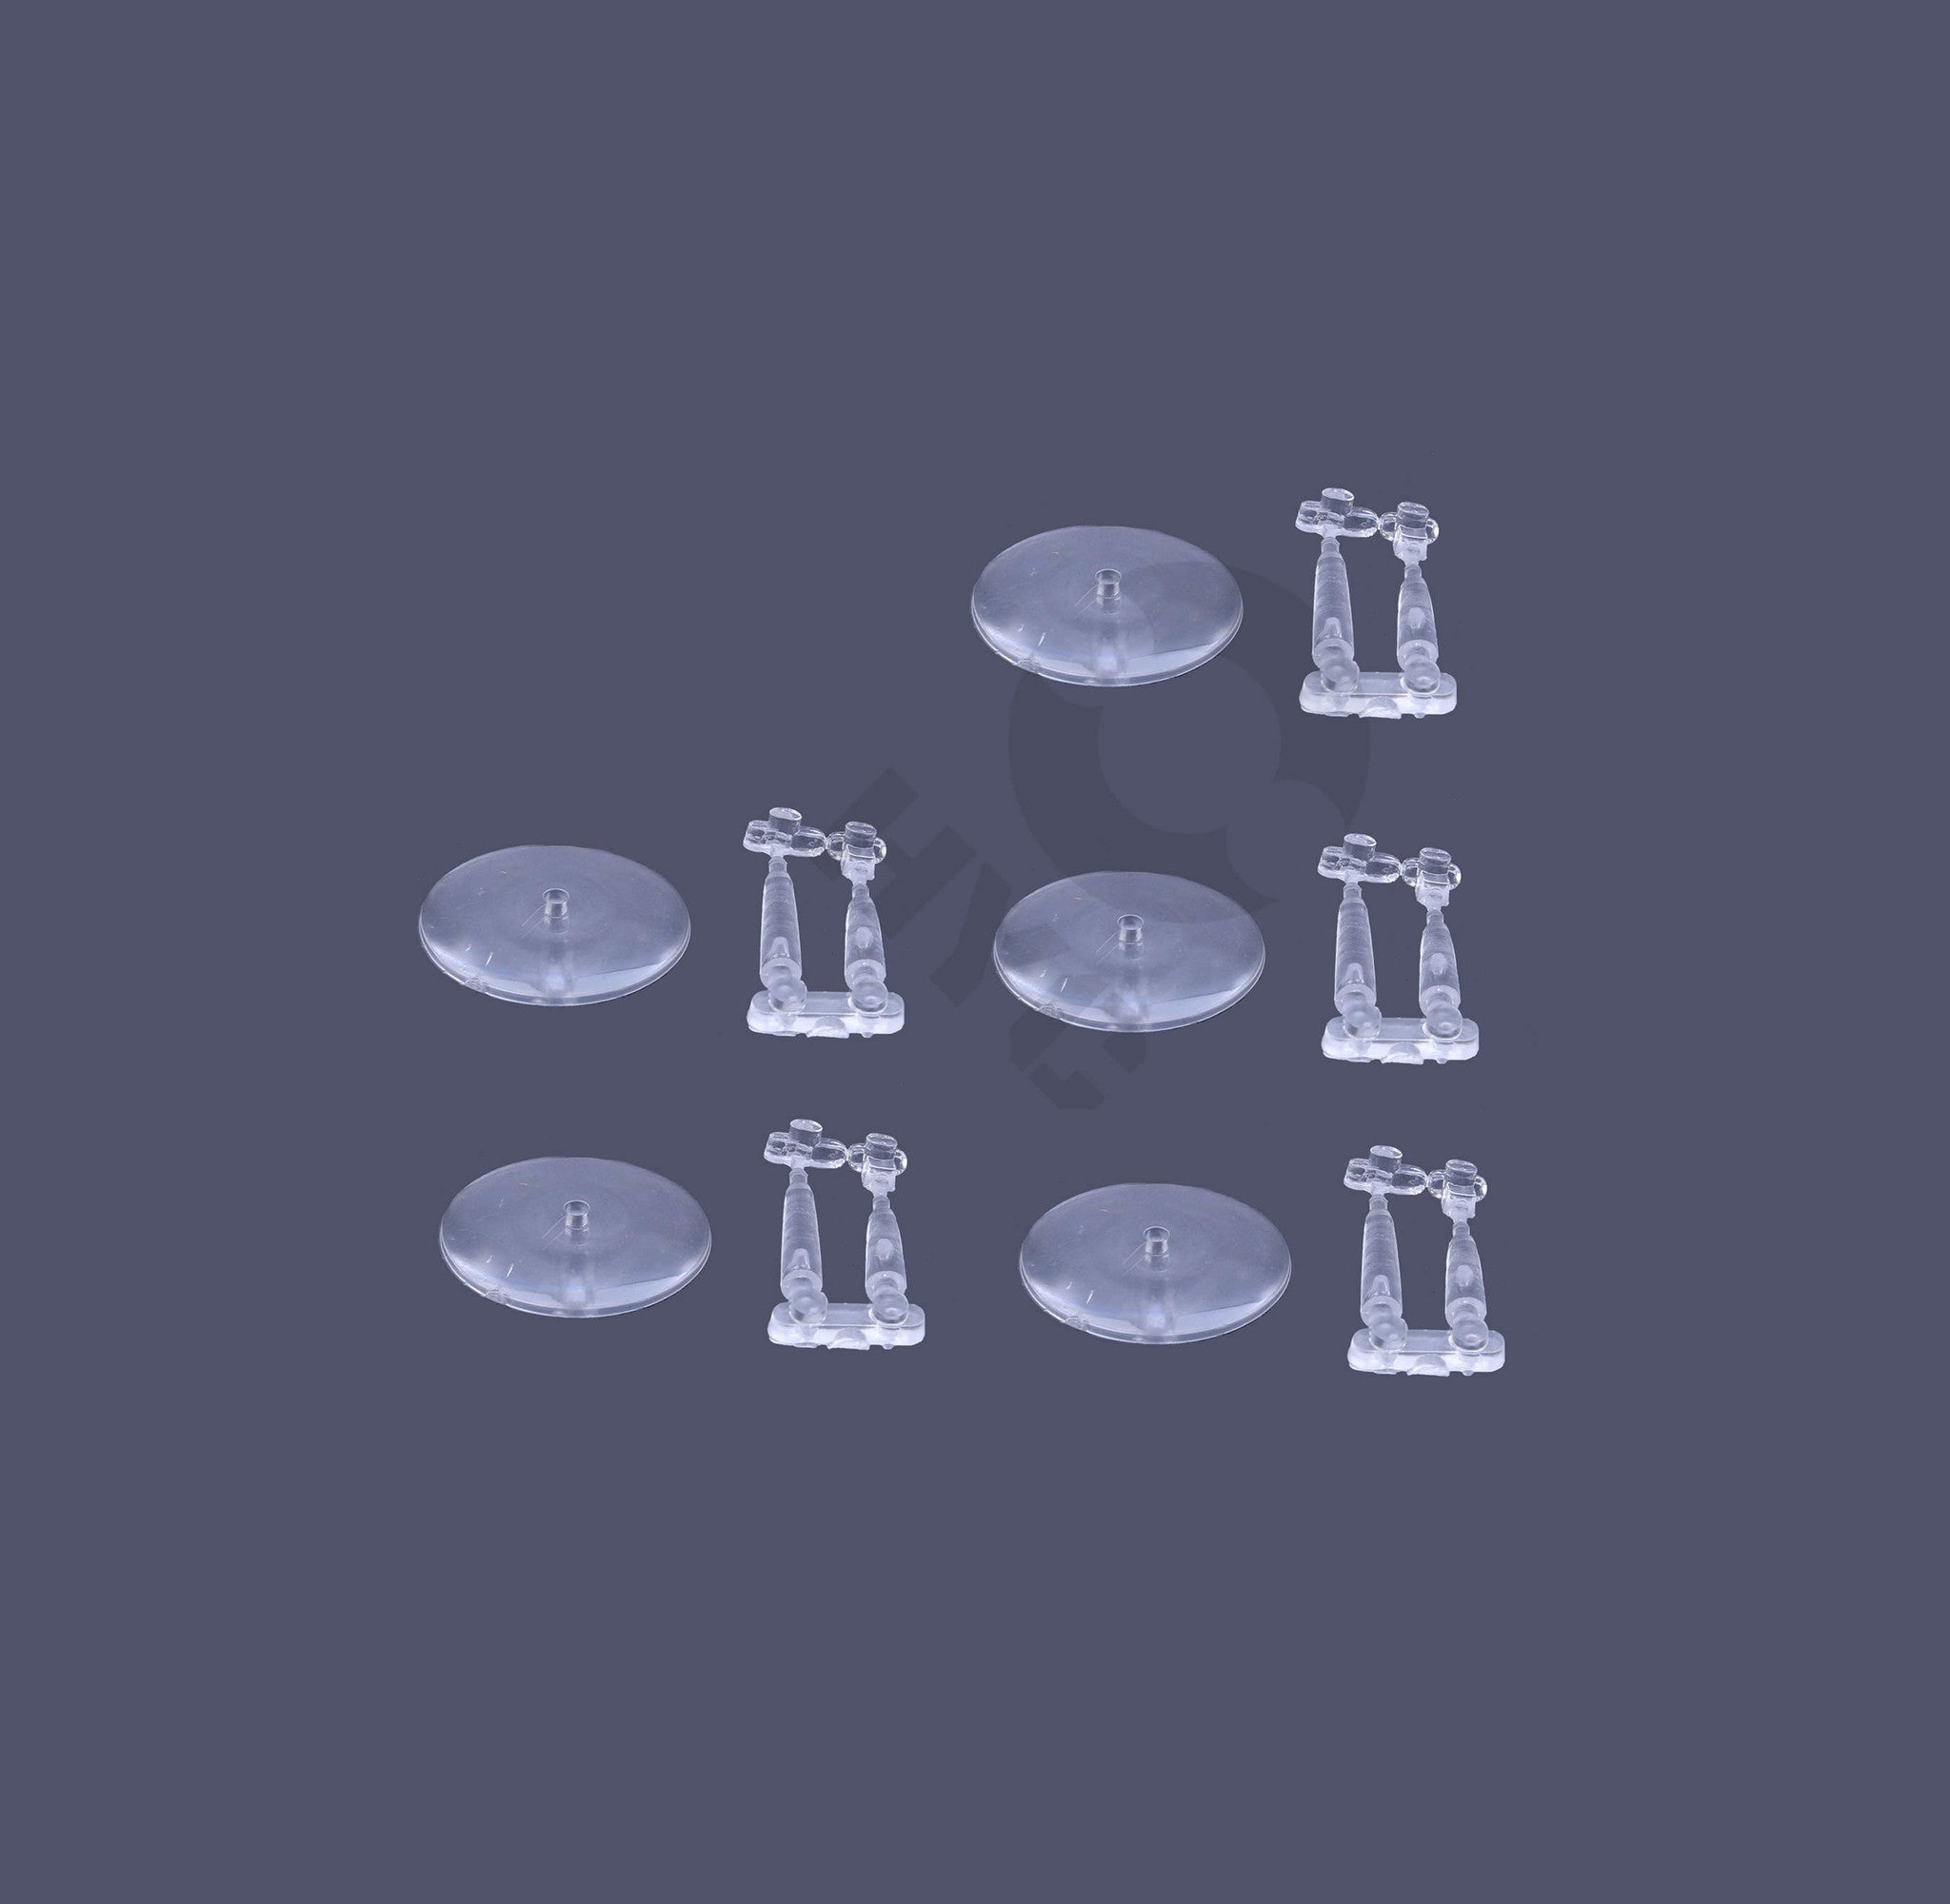 warhammer bases - Lot of 5 Flying Stems with 32mm Flying Bases - Flying Bases - HeyyoucCast Workshop